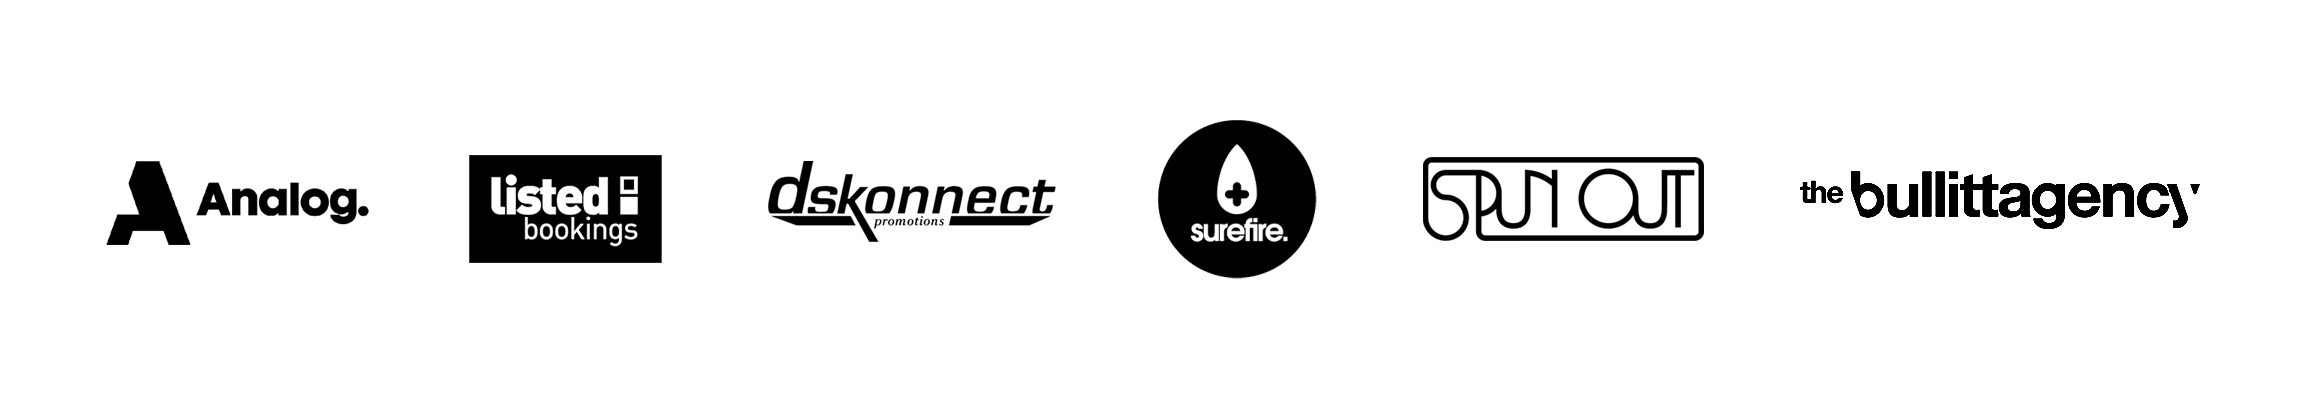 Logos for some of the world's best booking agencies that use Gigwell: Live Fast Entertainment, Heavy Talent, Bonsound, and Kiachia